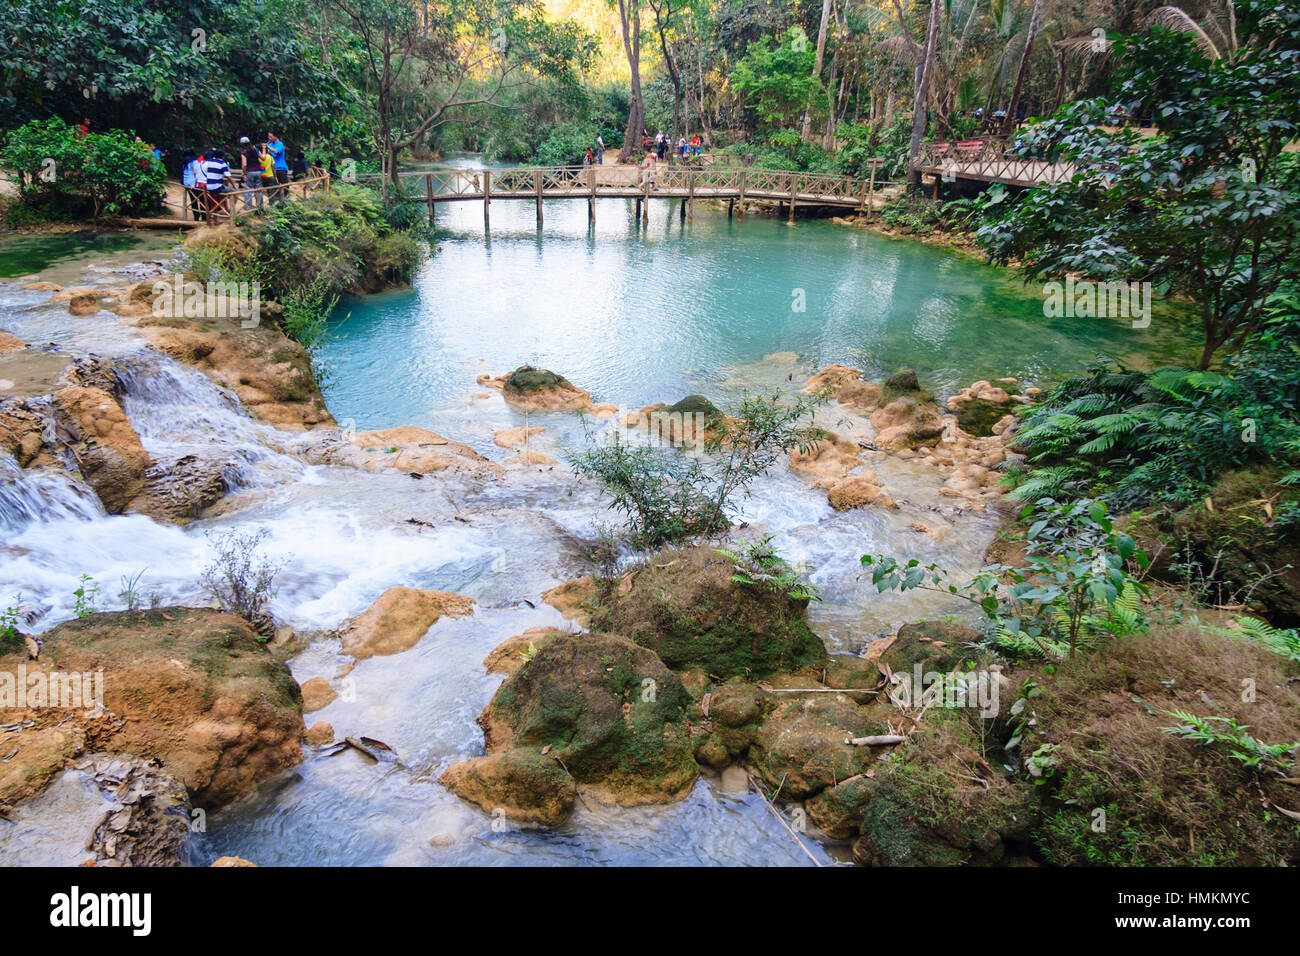 Pool and bridge at Kuang Si Waterfalls, 29 km south of Luang Prabang, Laos, South East Asia - Stock Image